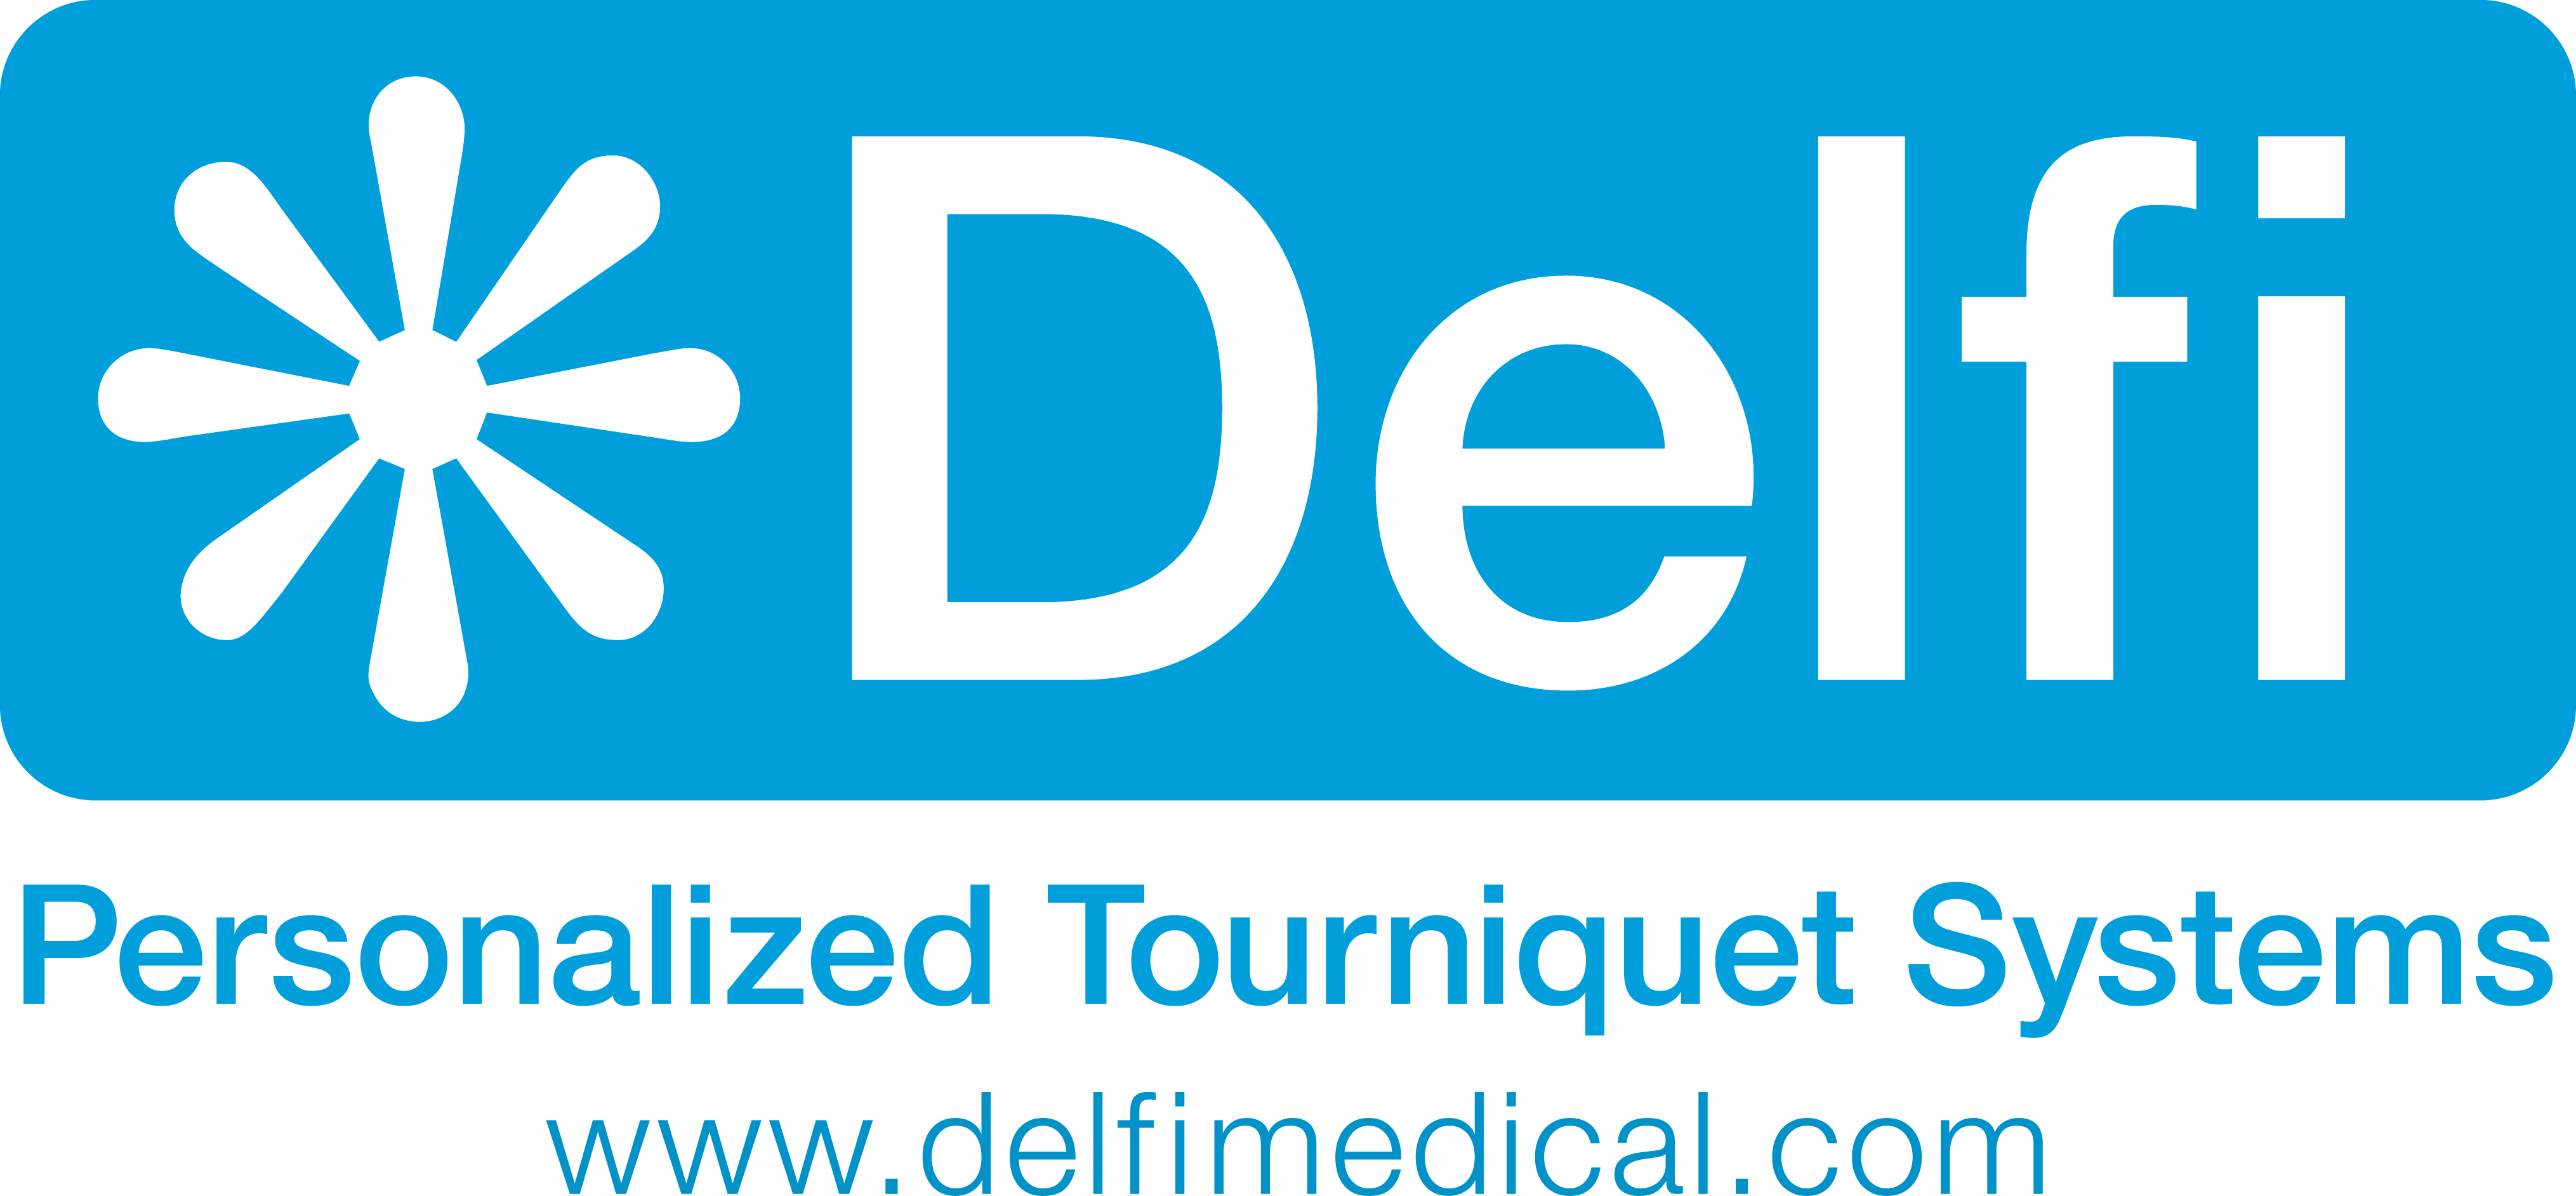 Aorn global surgical conference expo exhibit hall education surgical tourniquet safety study guide 2149 delfi medical 1betcityfo Choice Image